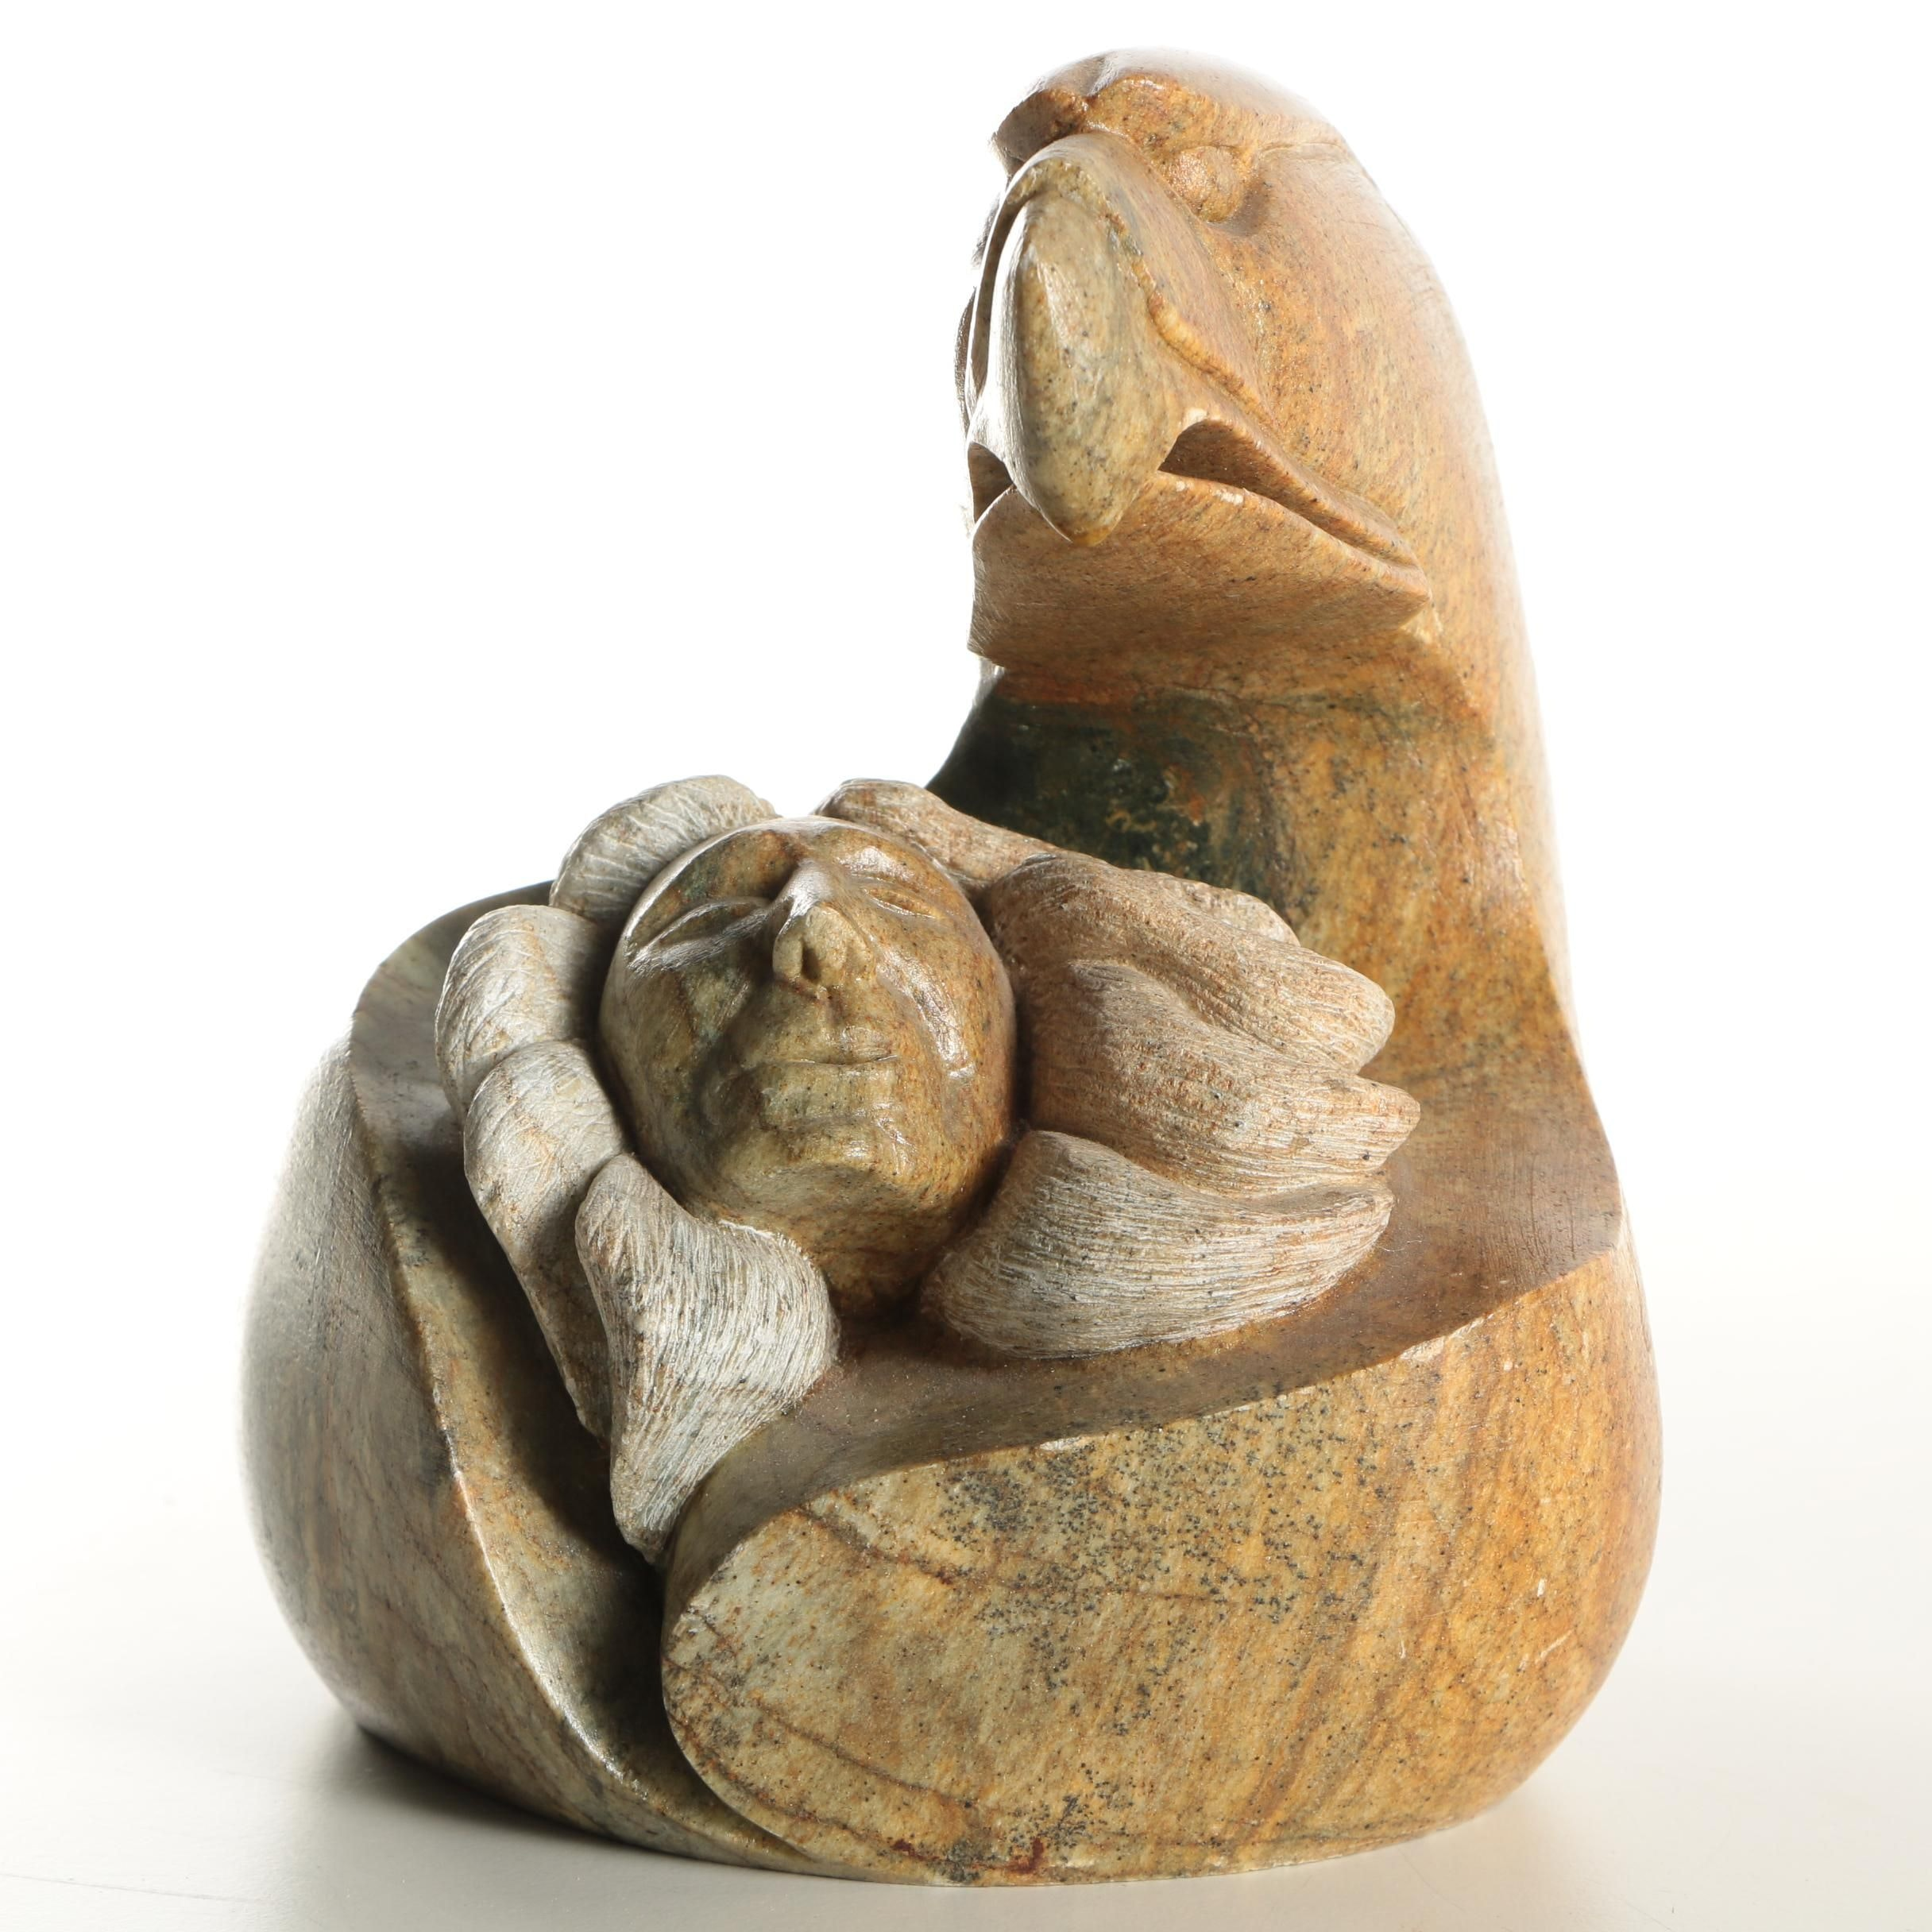 1997 Ben Henry Six Nations Soapstone Carving